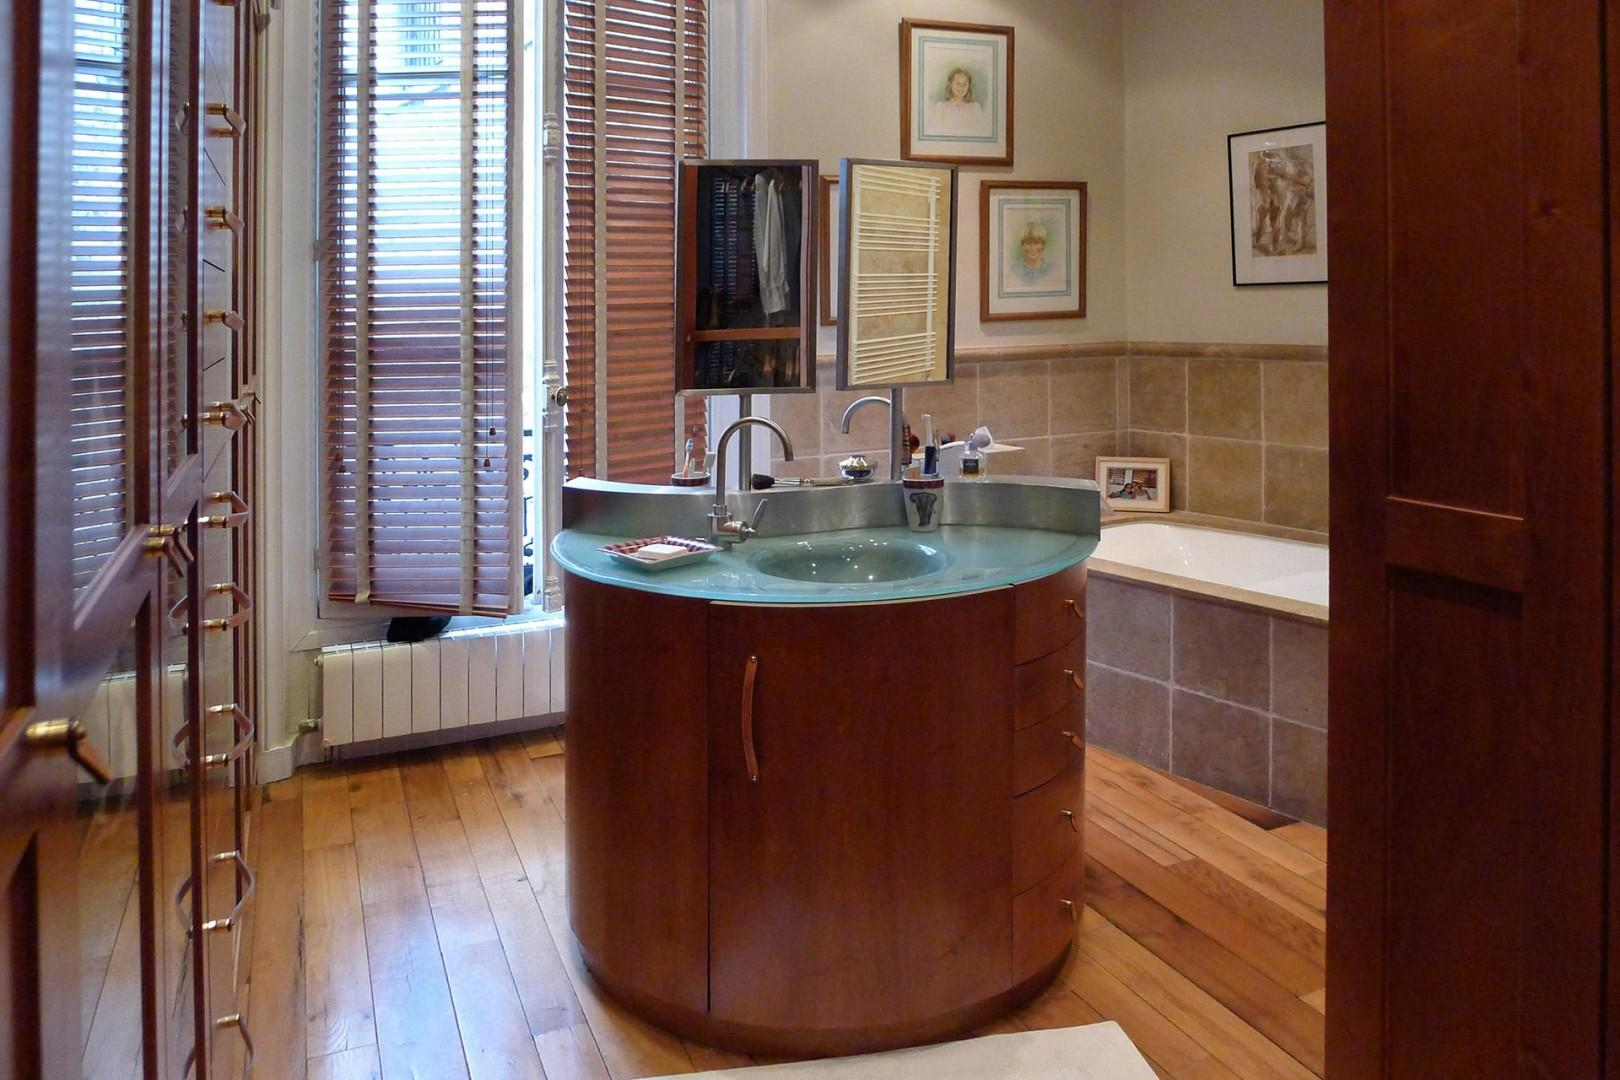 Start your day in bathroom 1 with this gorgeous woodwork.